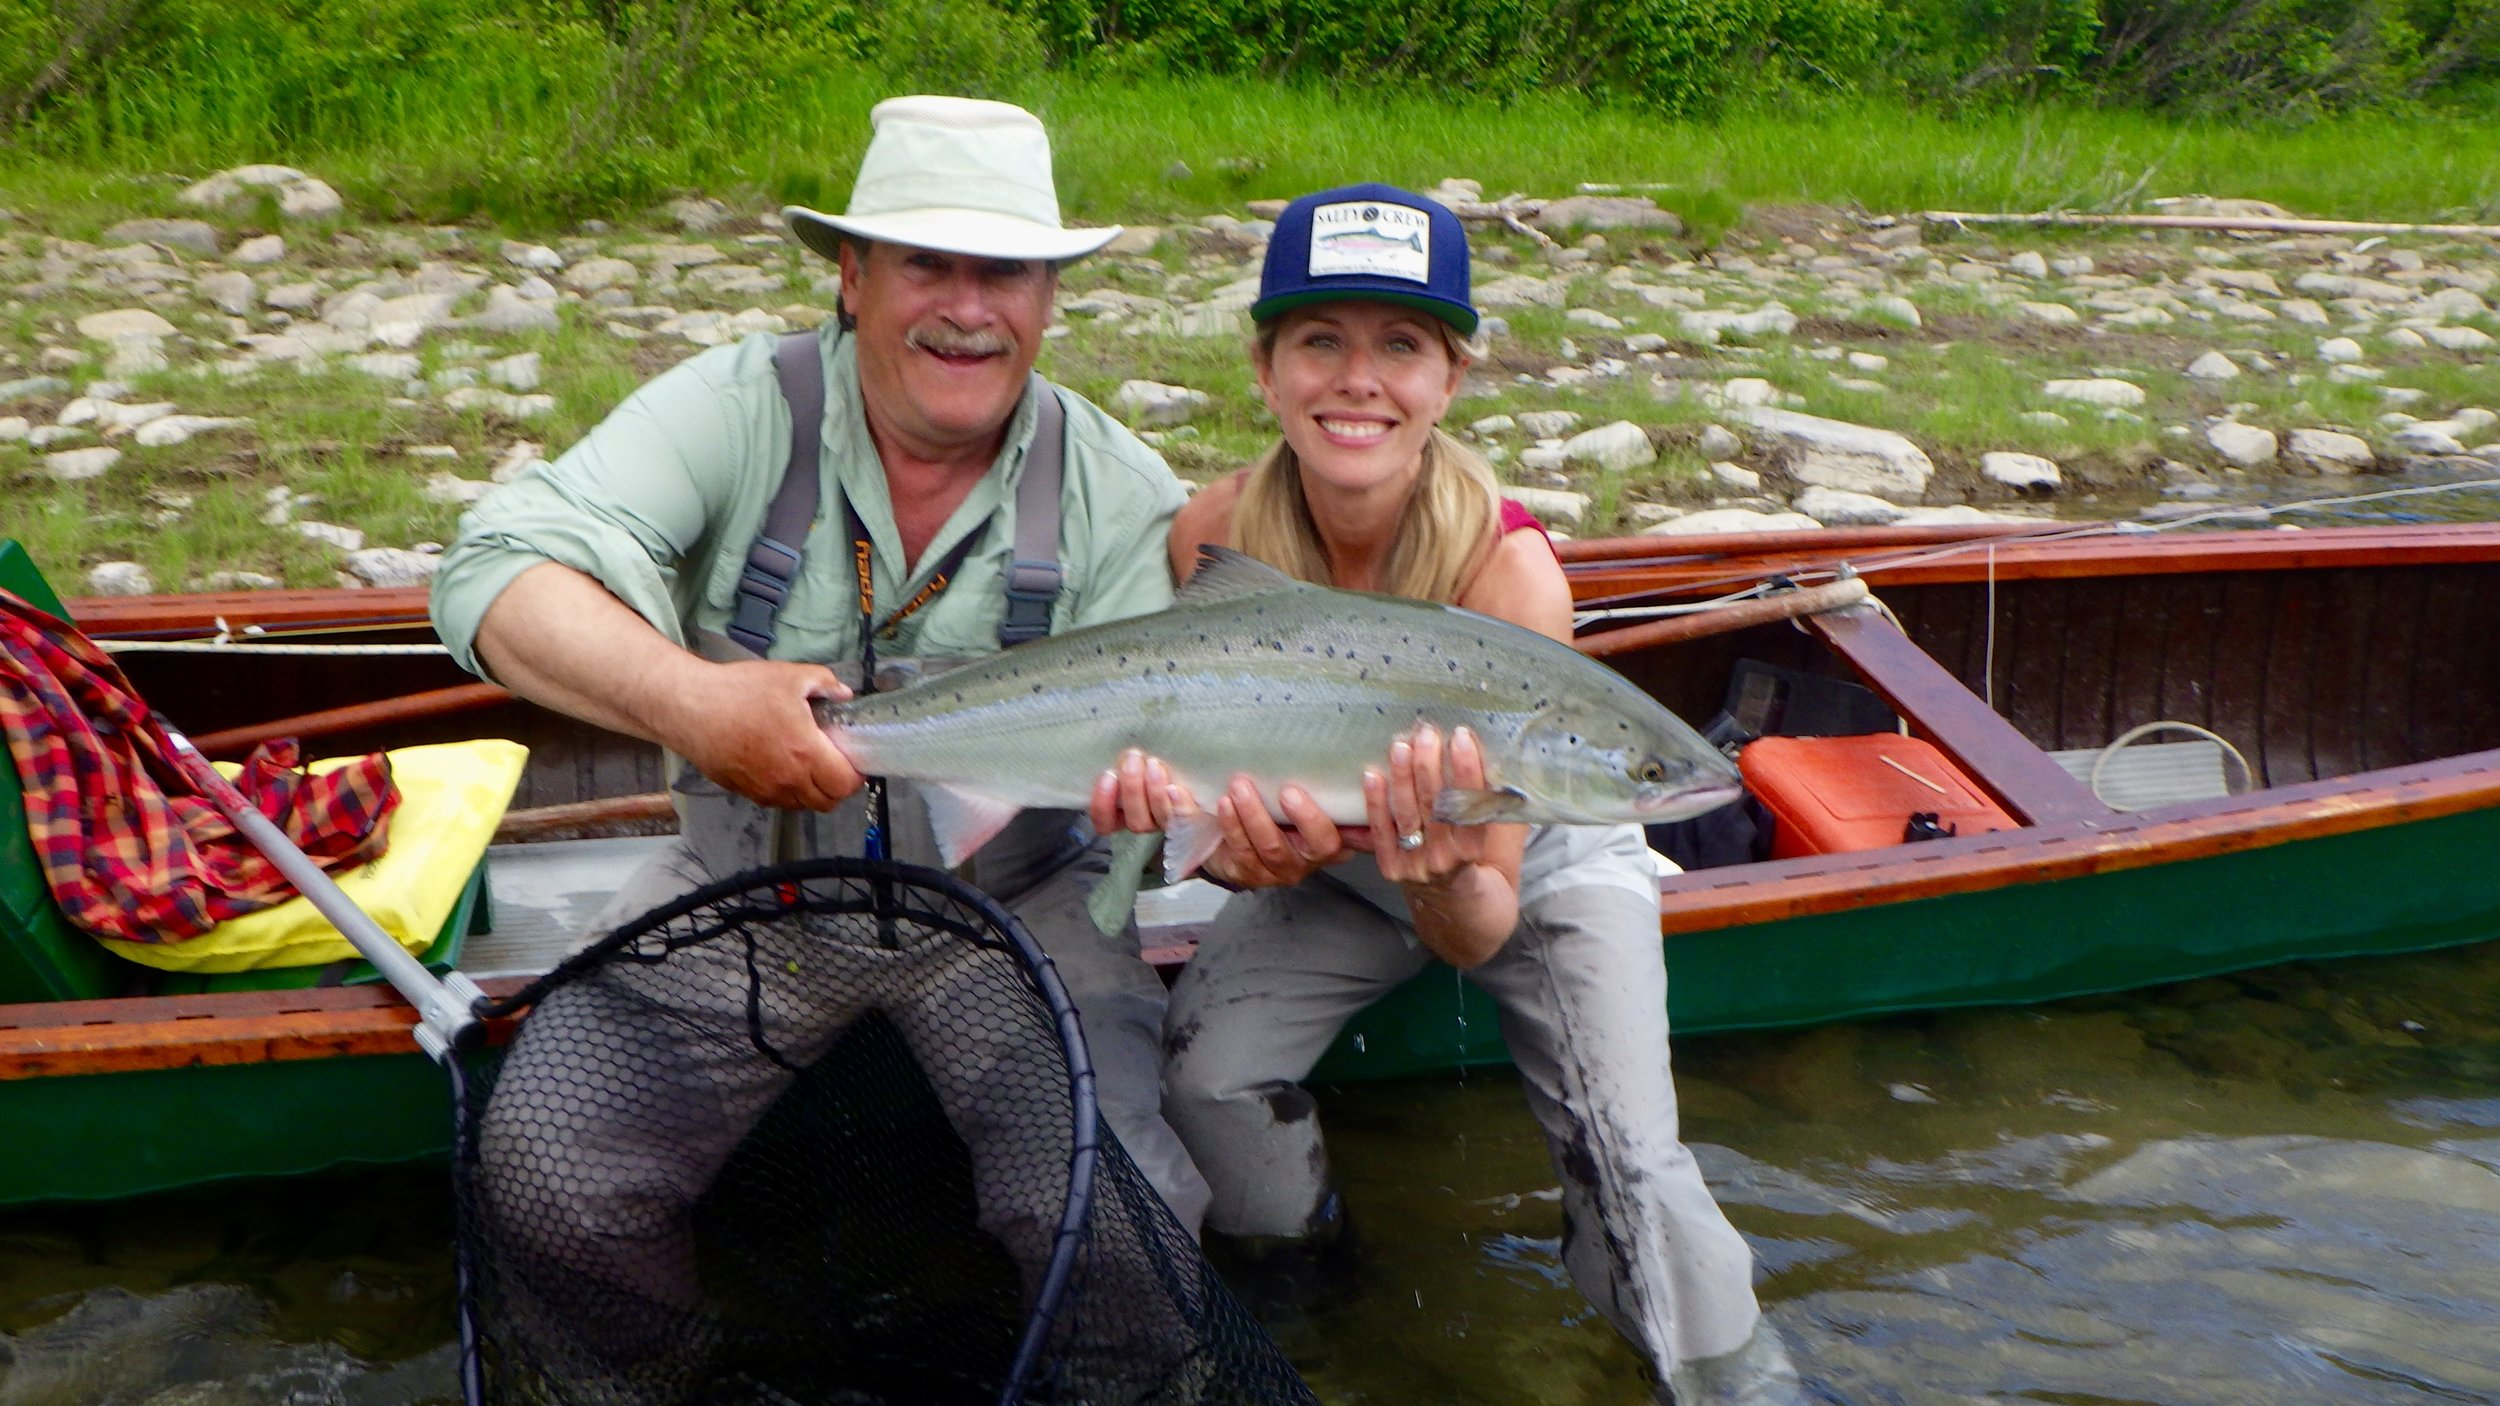 Congratulations to Patricia LePage who caught this fine salmon under the watchful eye of our head guide Mario Poirier. nice one Patricia.